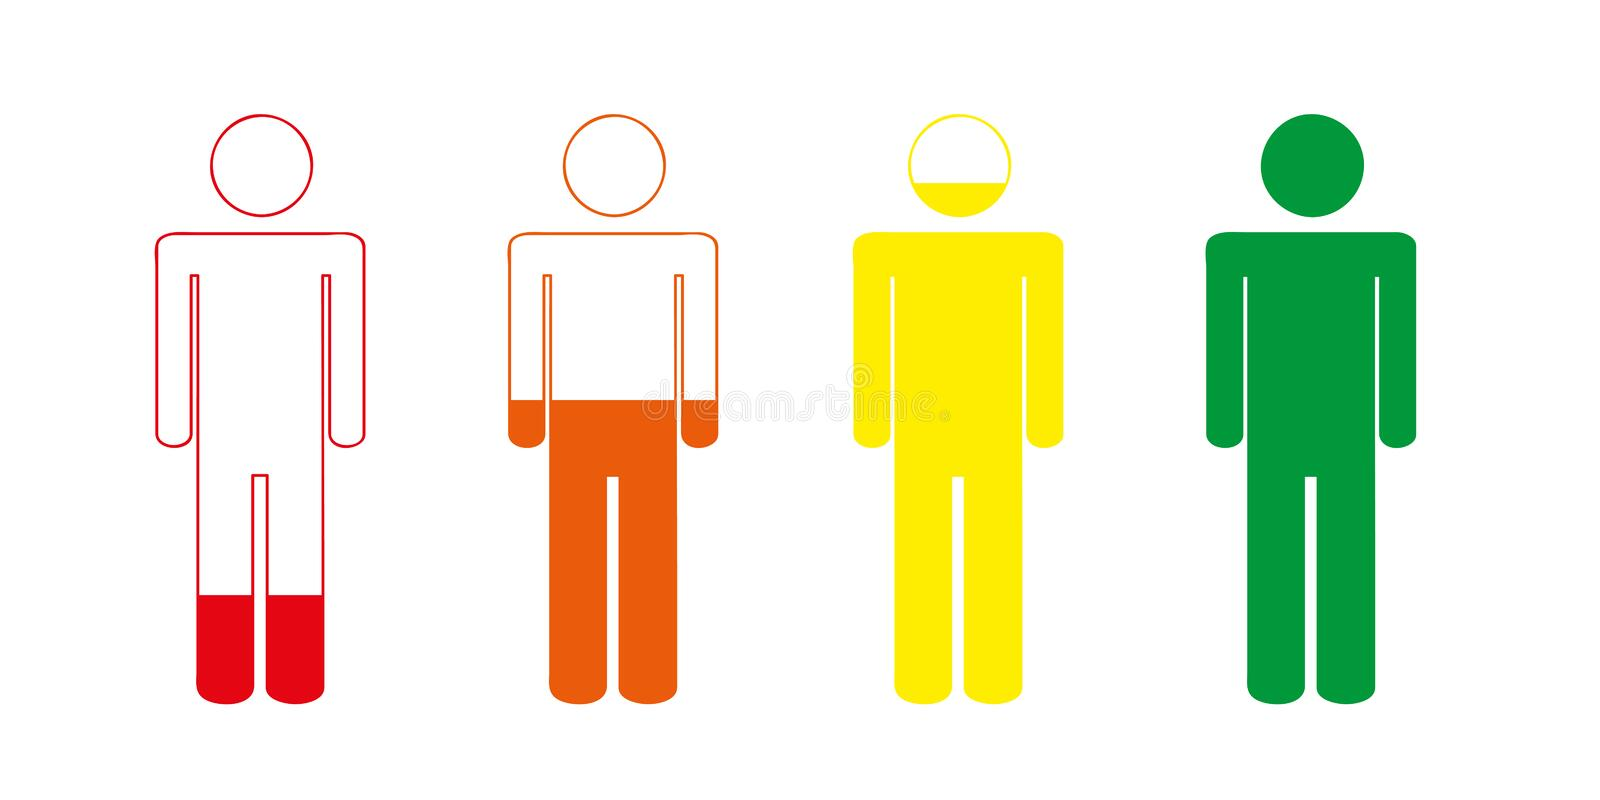 Charging your life battery person pictogram stock illustration